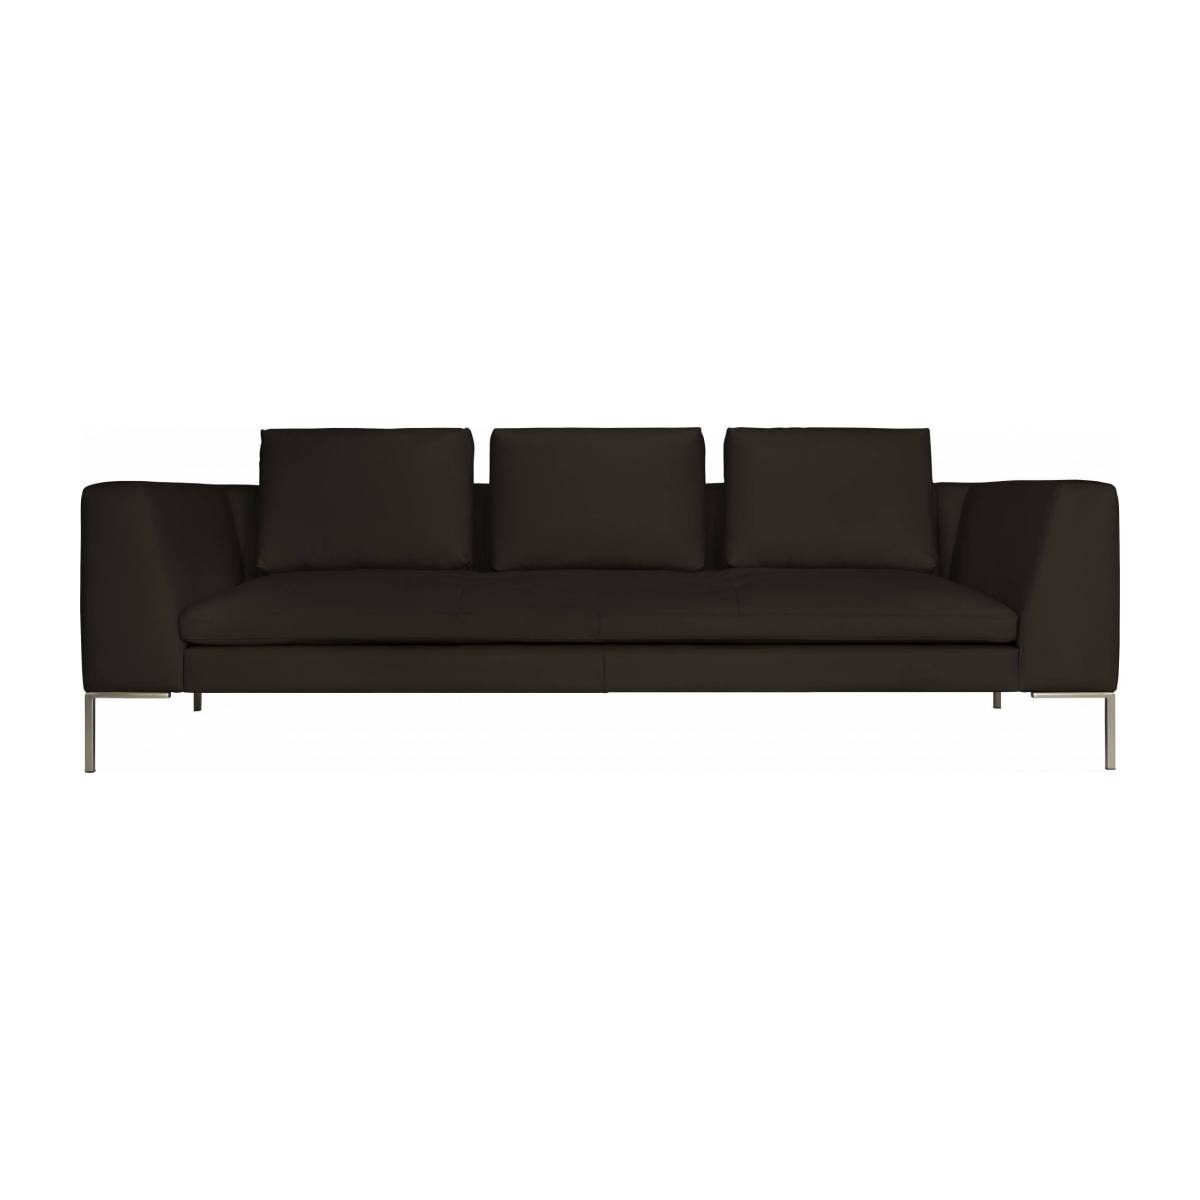 3 seater sofa in Eton veined leather, brown n°1